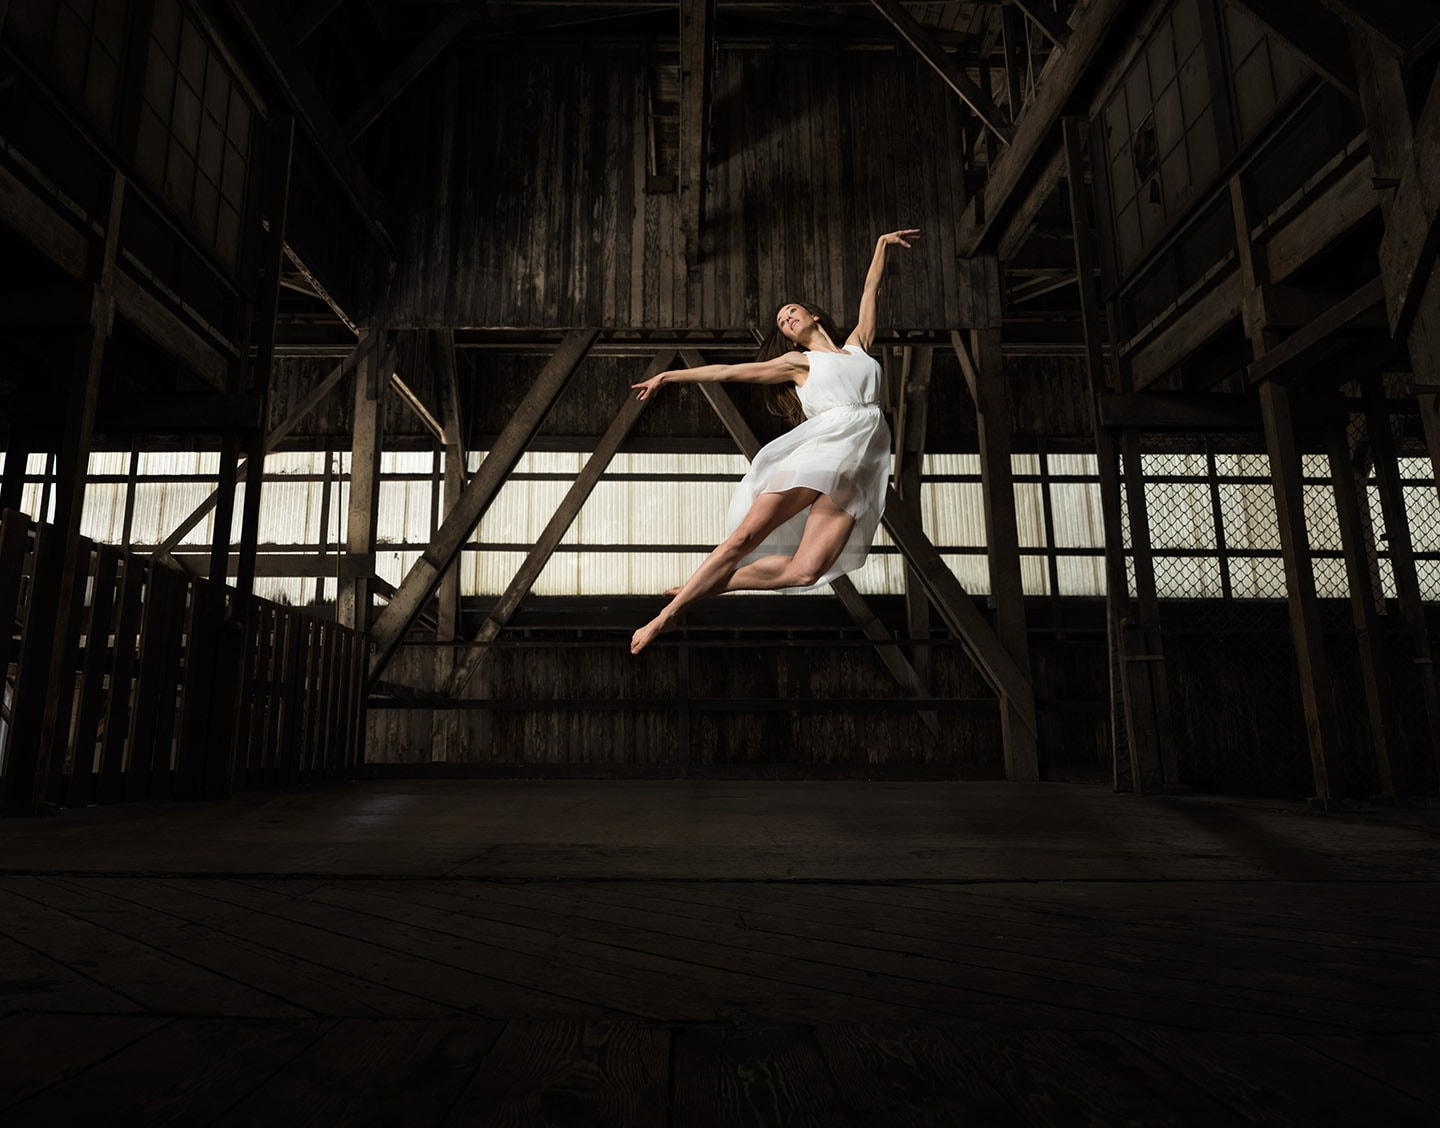 Dancer In White Profile Image of Pointe in Mid Air Jump